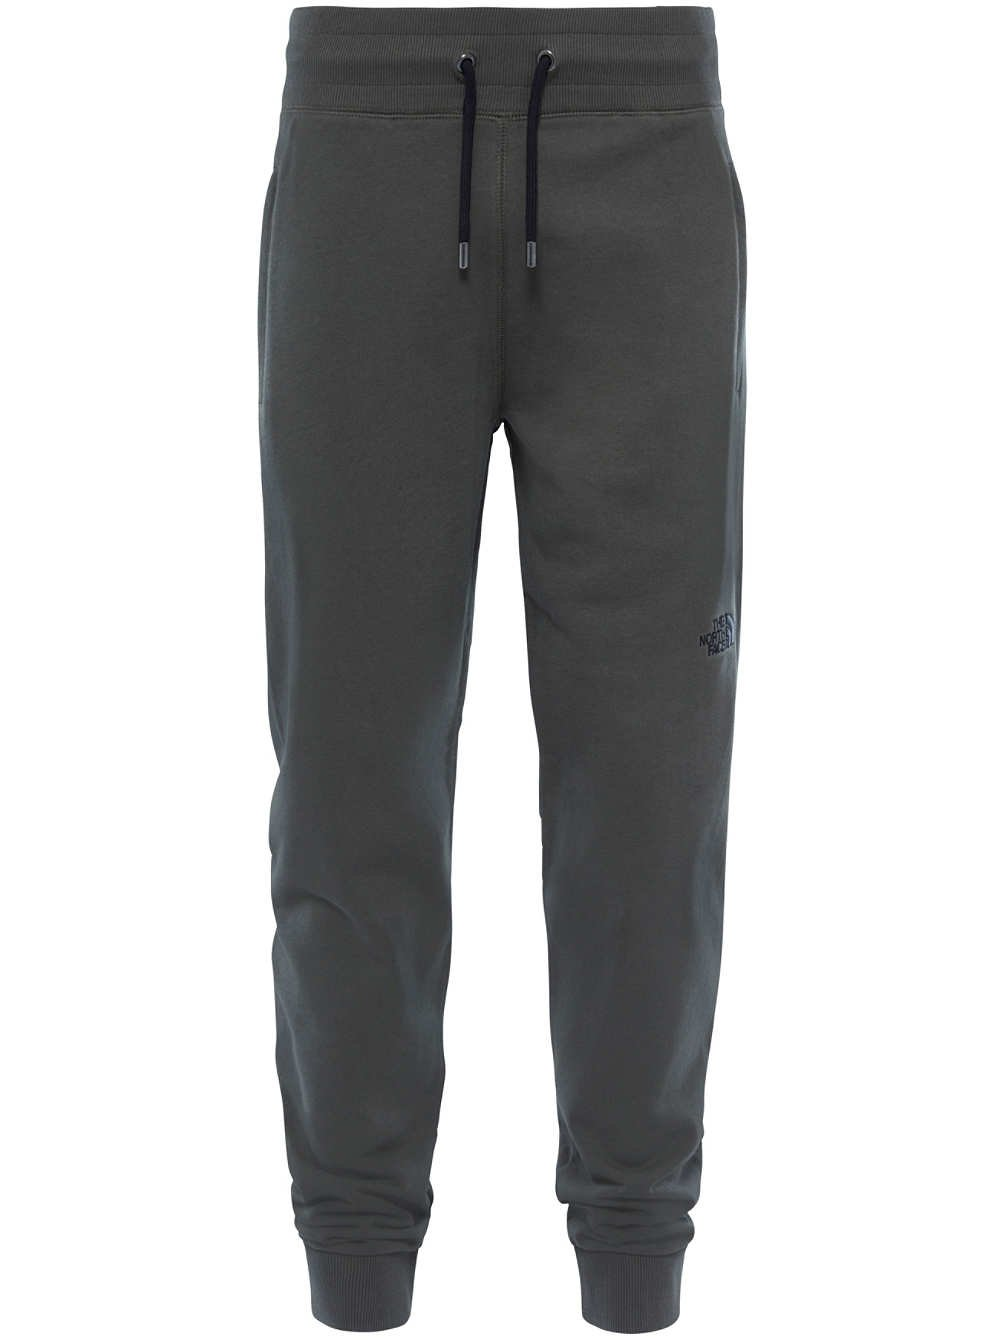 THE NORTH FACE Herren NSE Hose